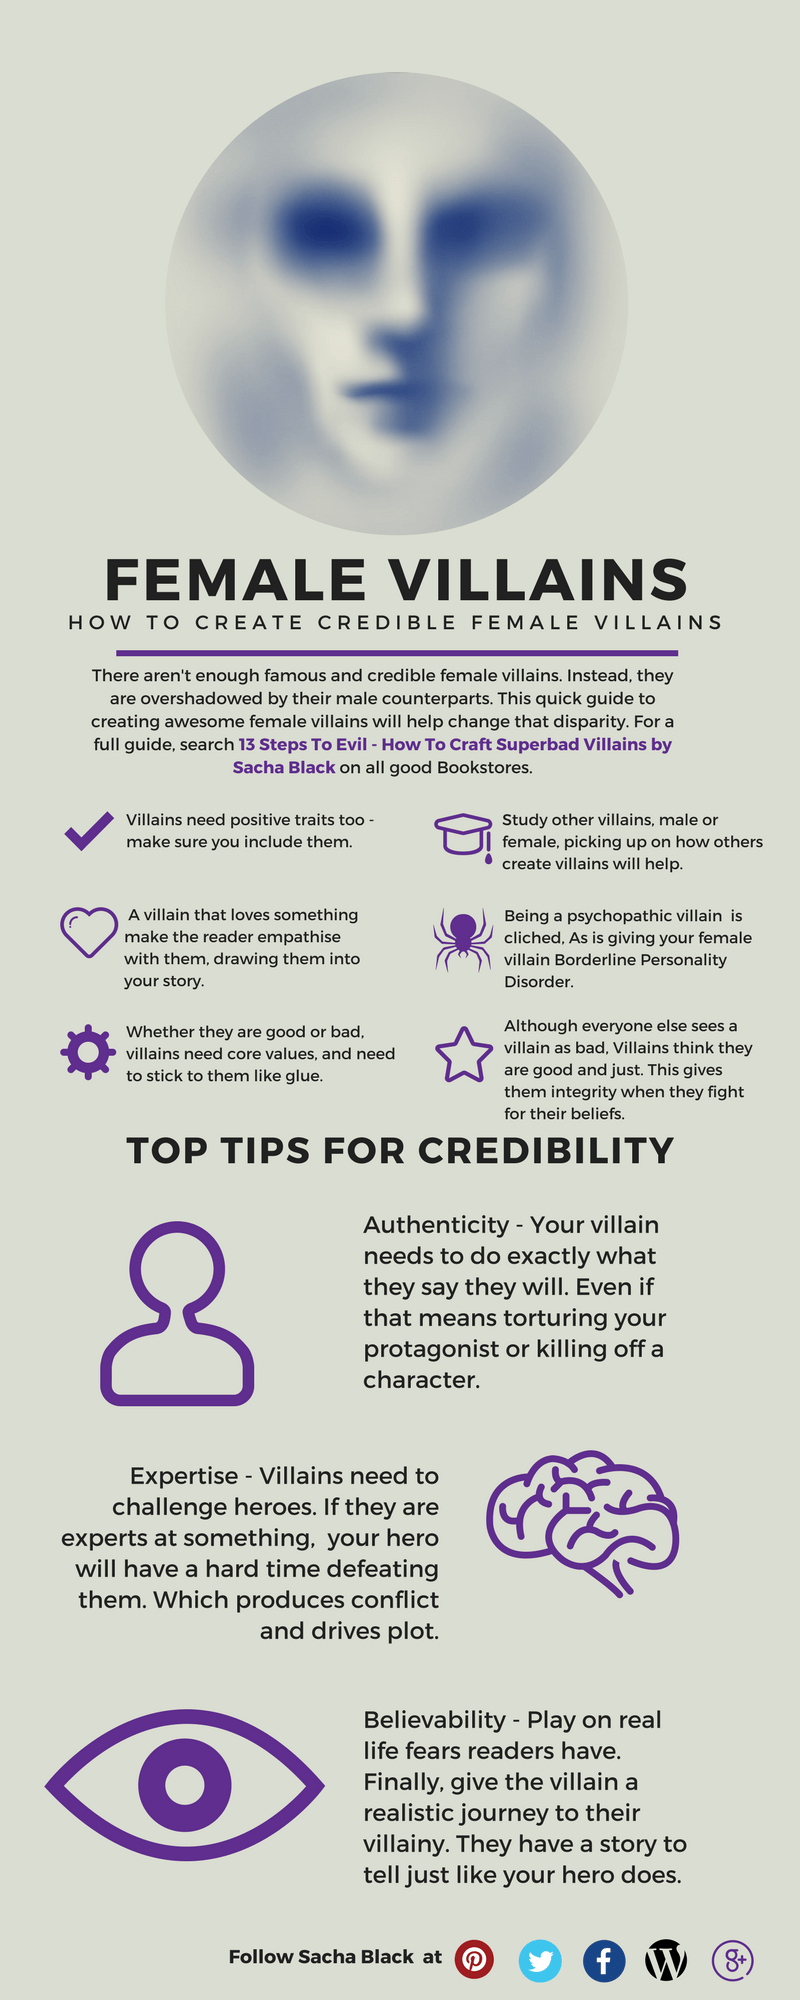 Warning: These 5 Points Will Help You Create Awesome Female Villains - Sacha Black